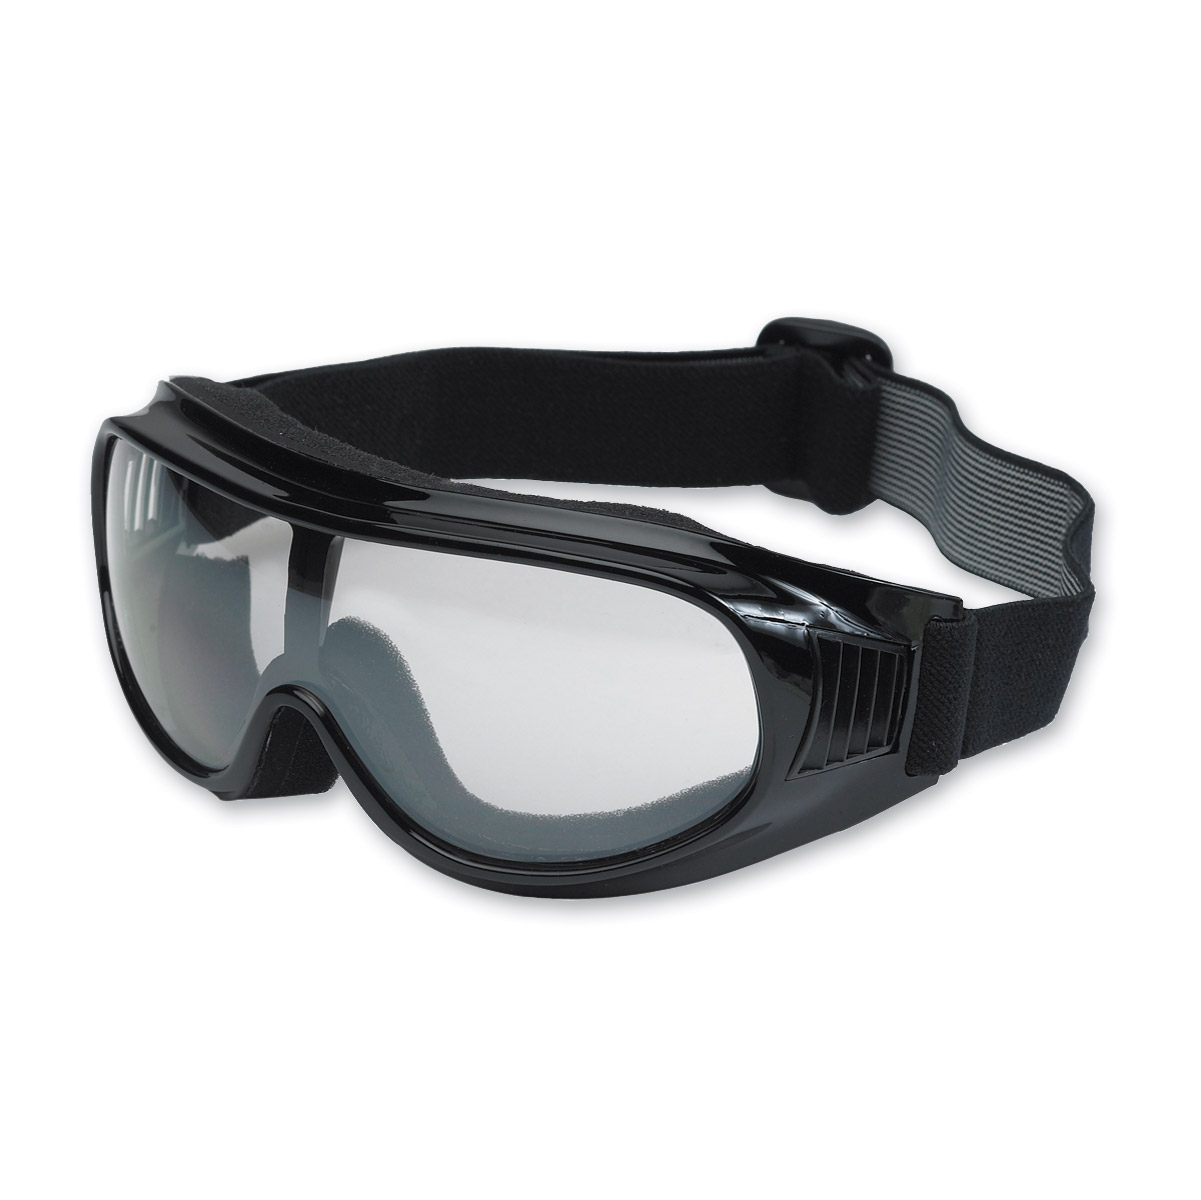 Chap'el Fitover Goggles with Clear Lens